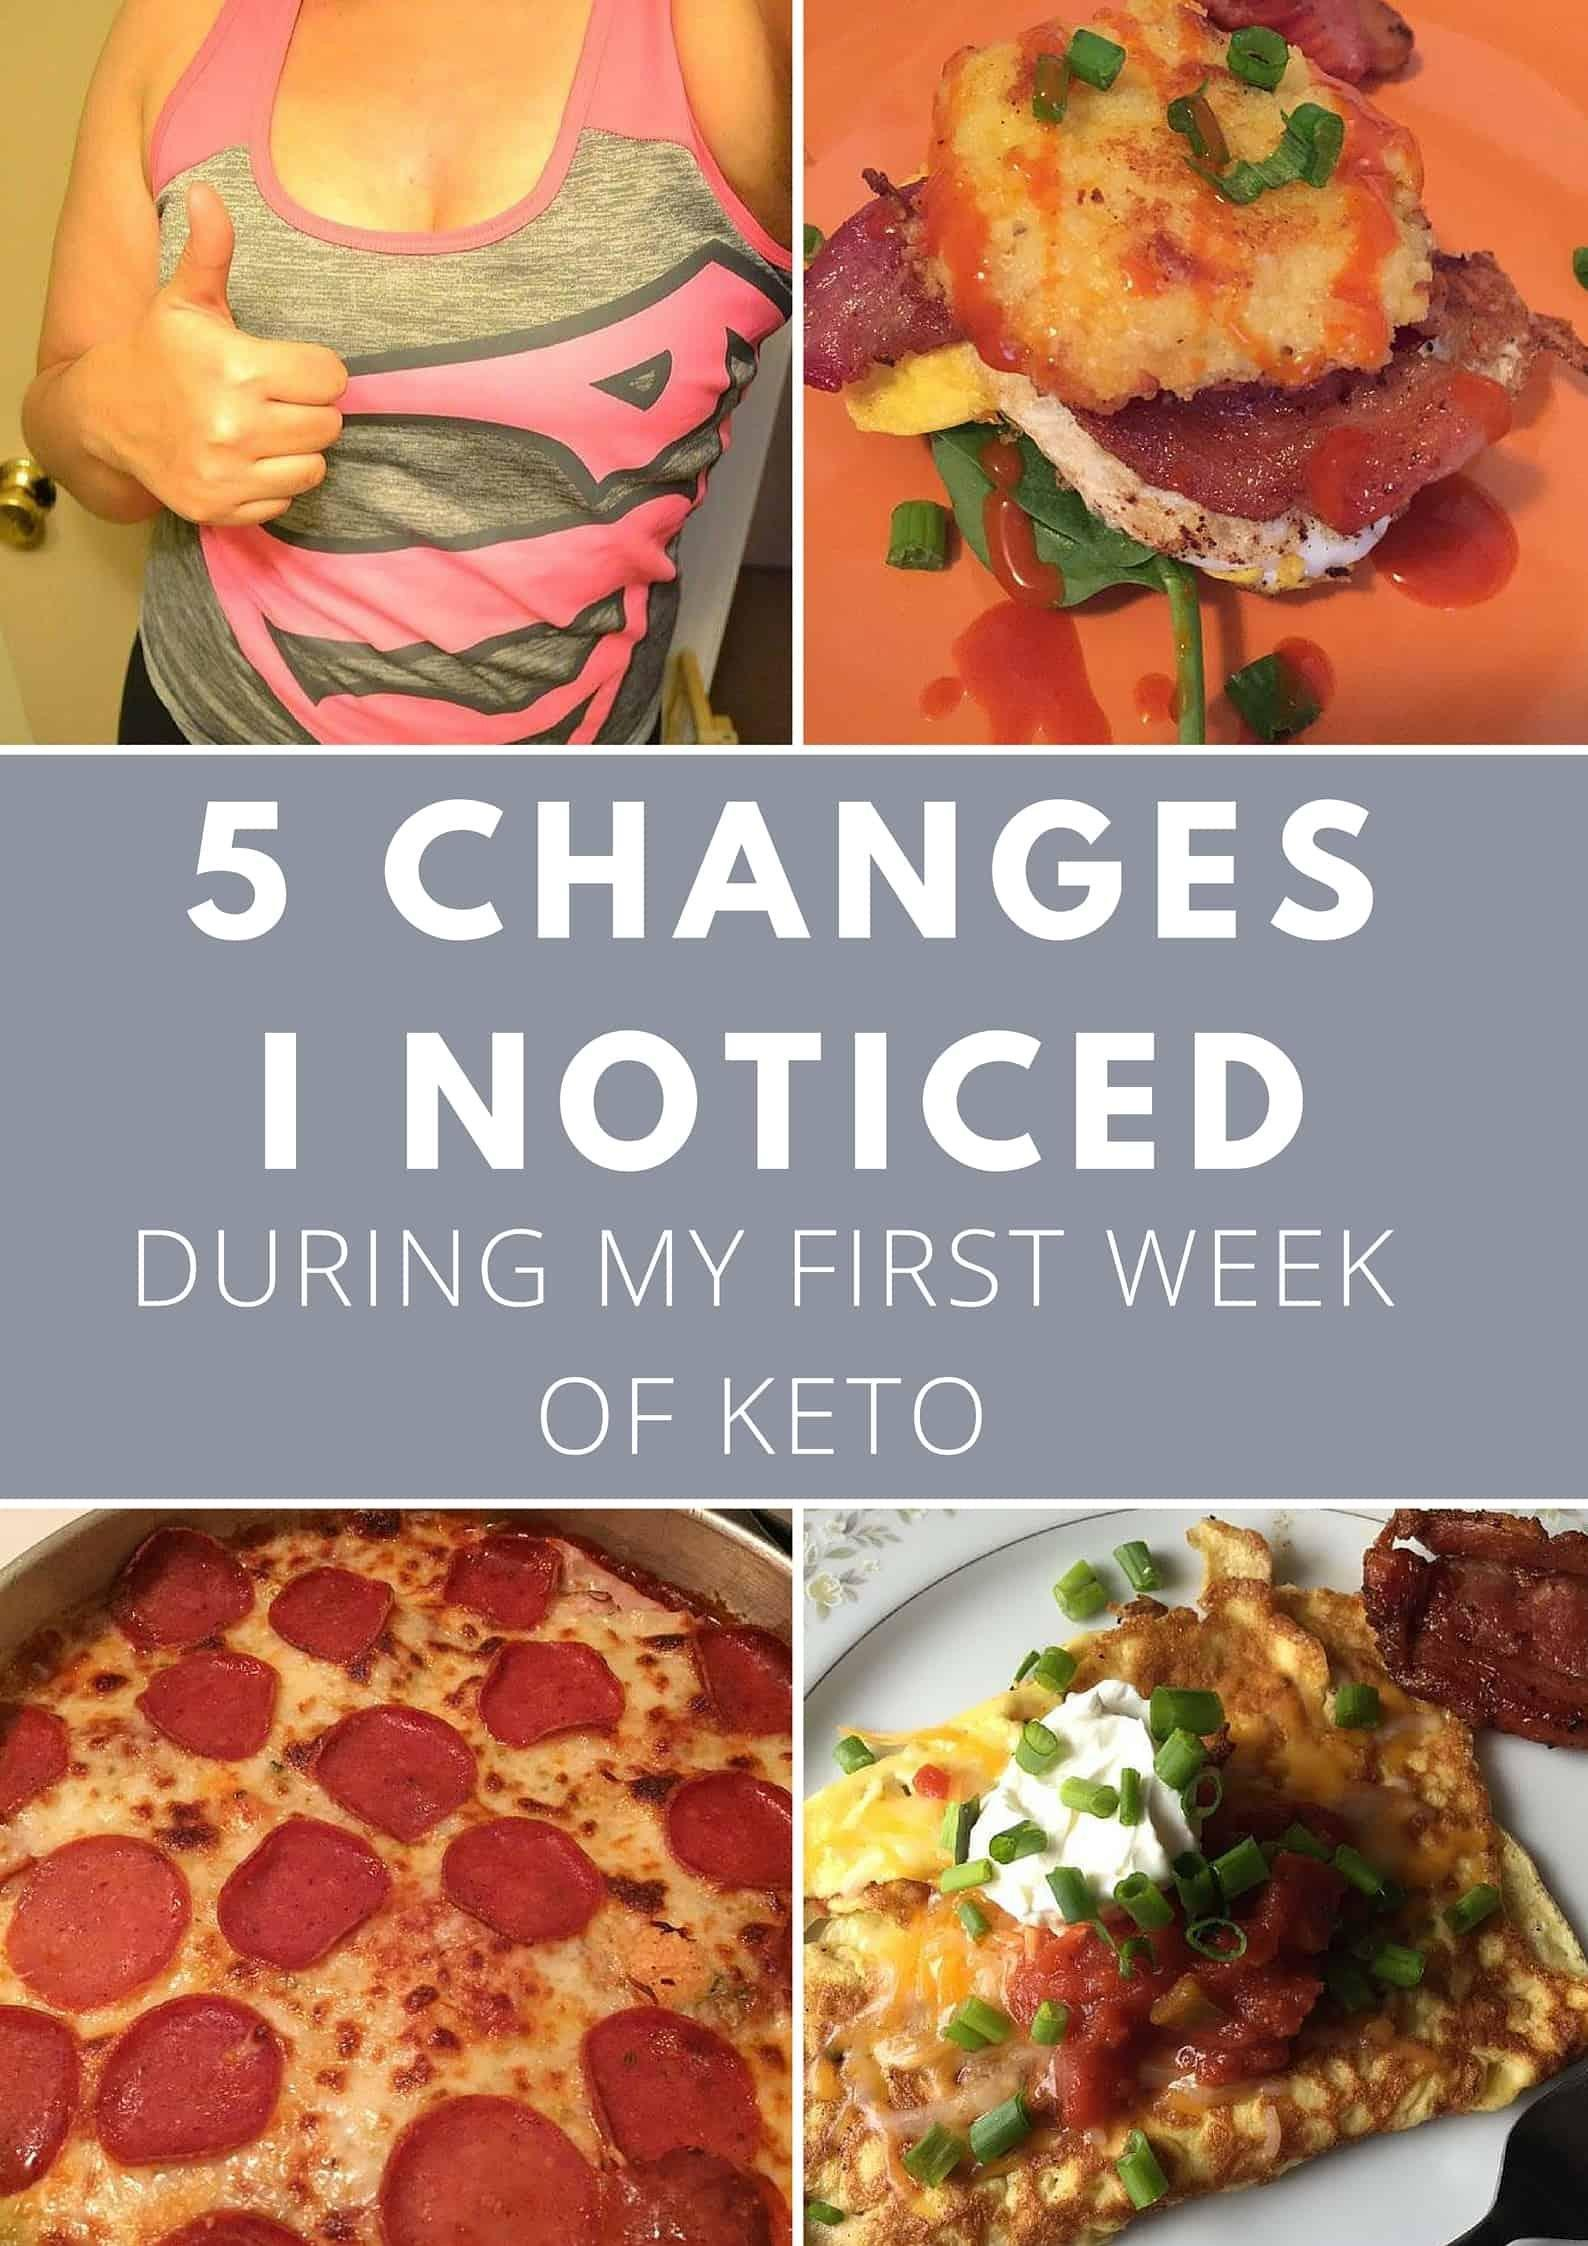 5 Changes During My First Week Of Keto